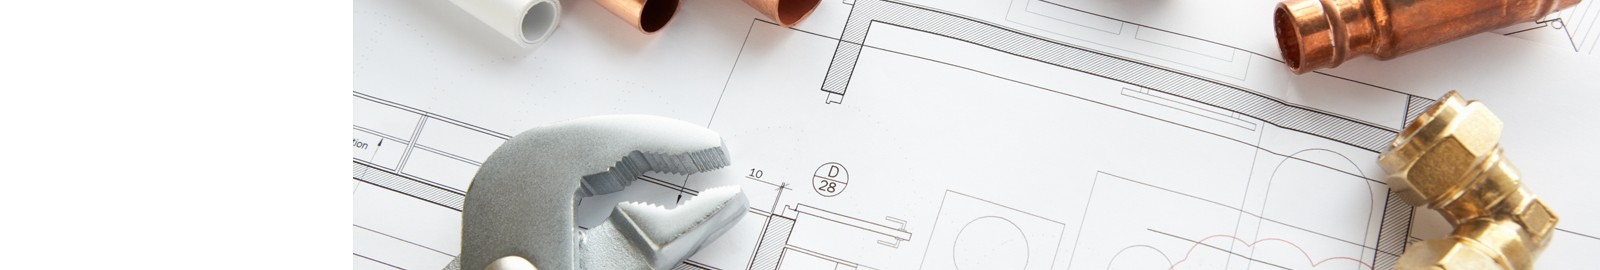 Baines Bathrooms Design & Planning